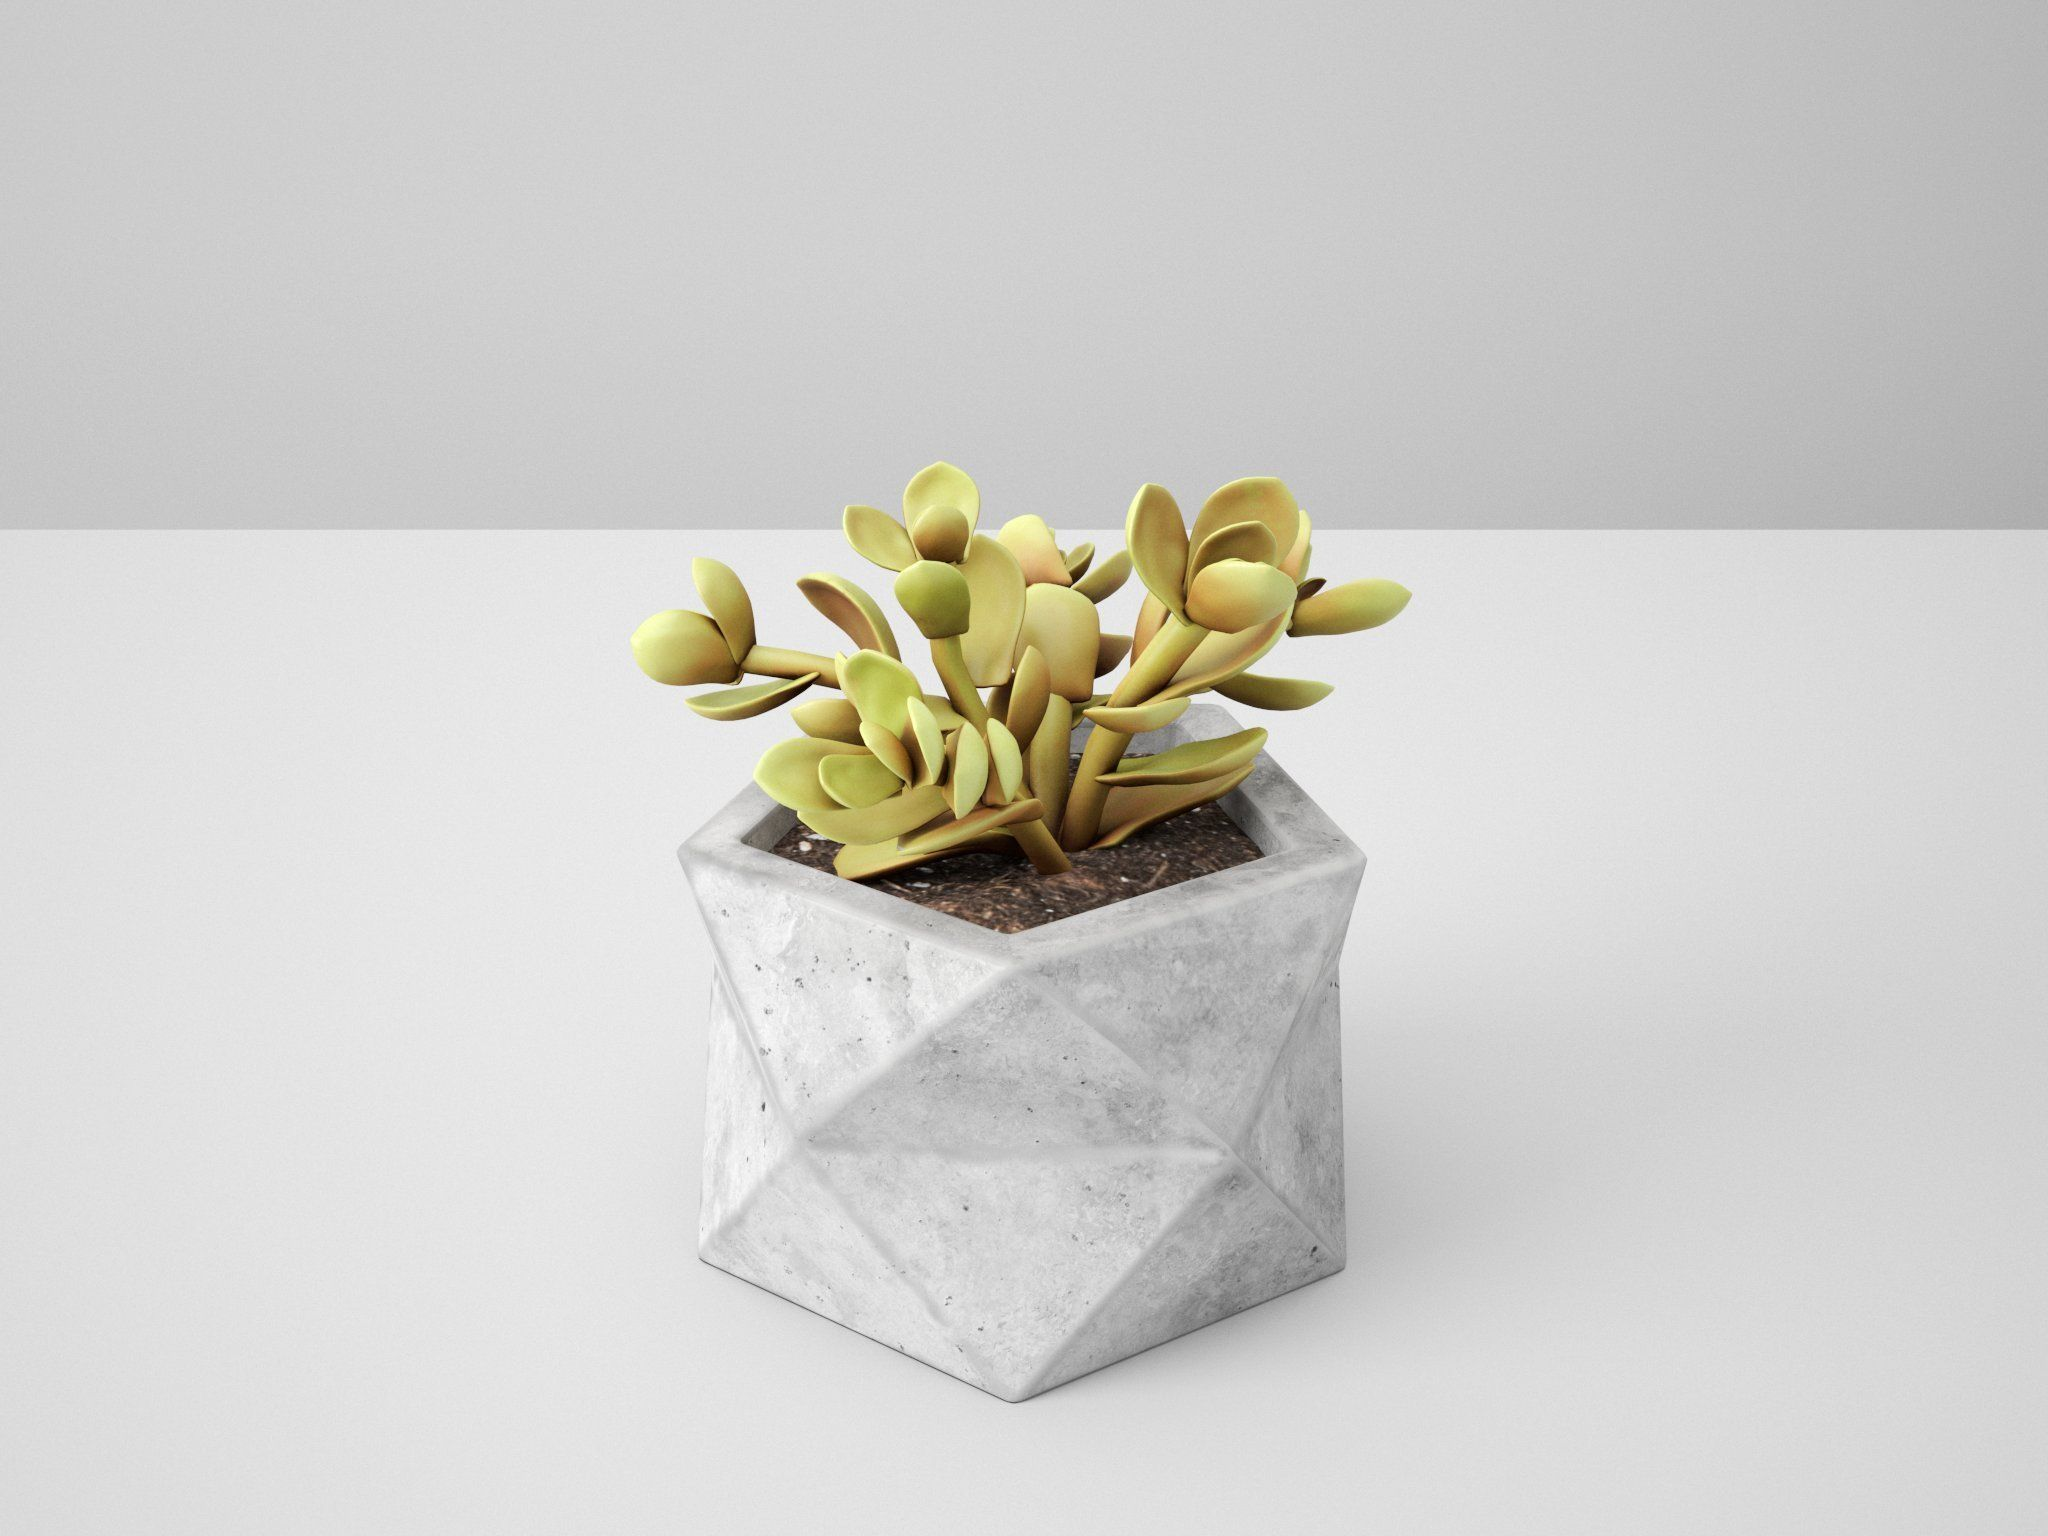 Polyhedral Concrete Potted Cactus